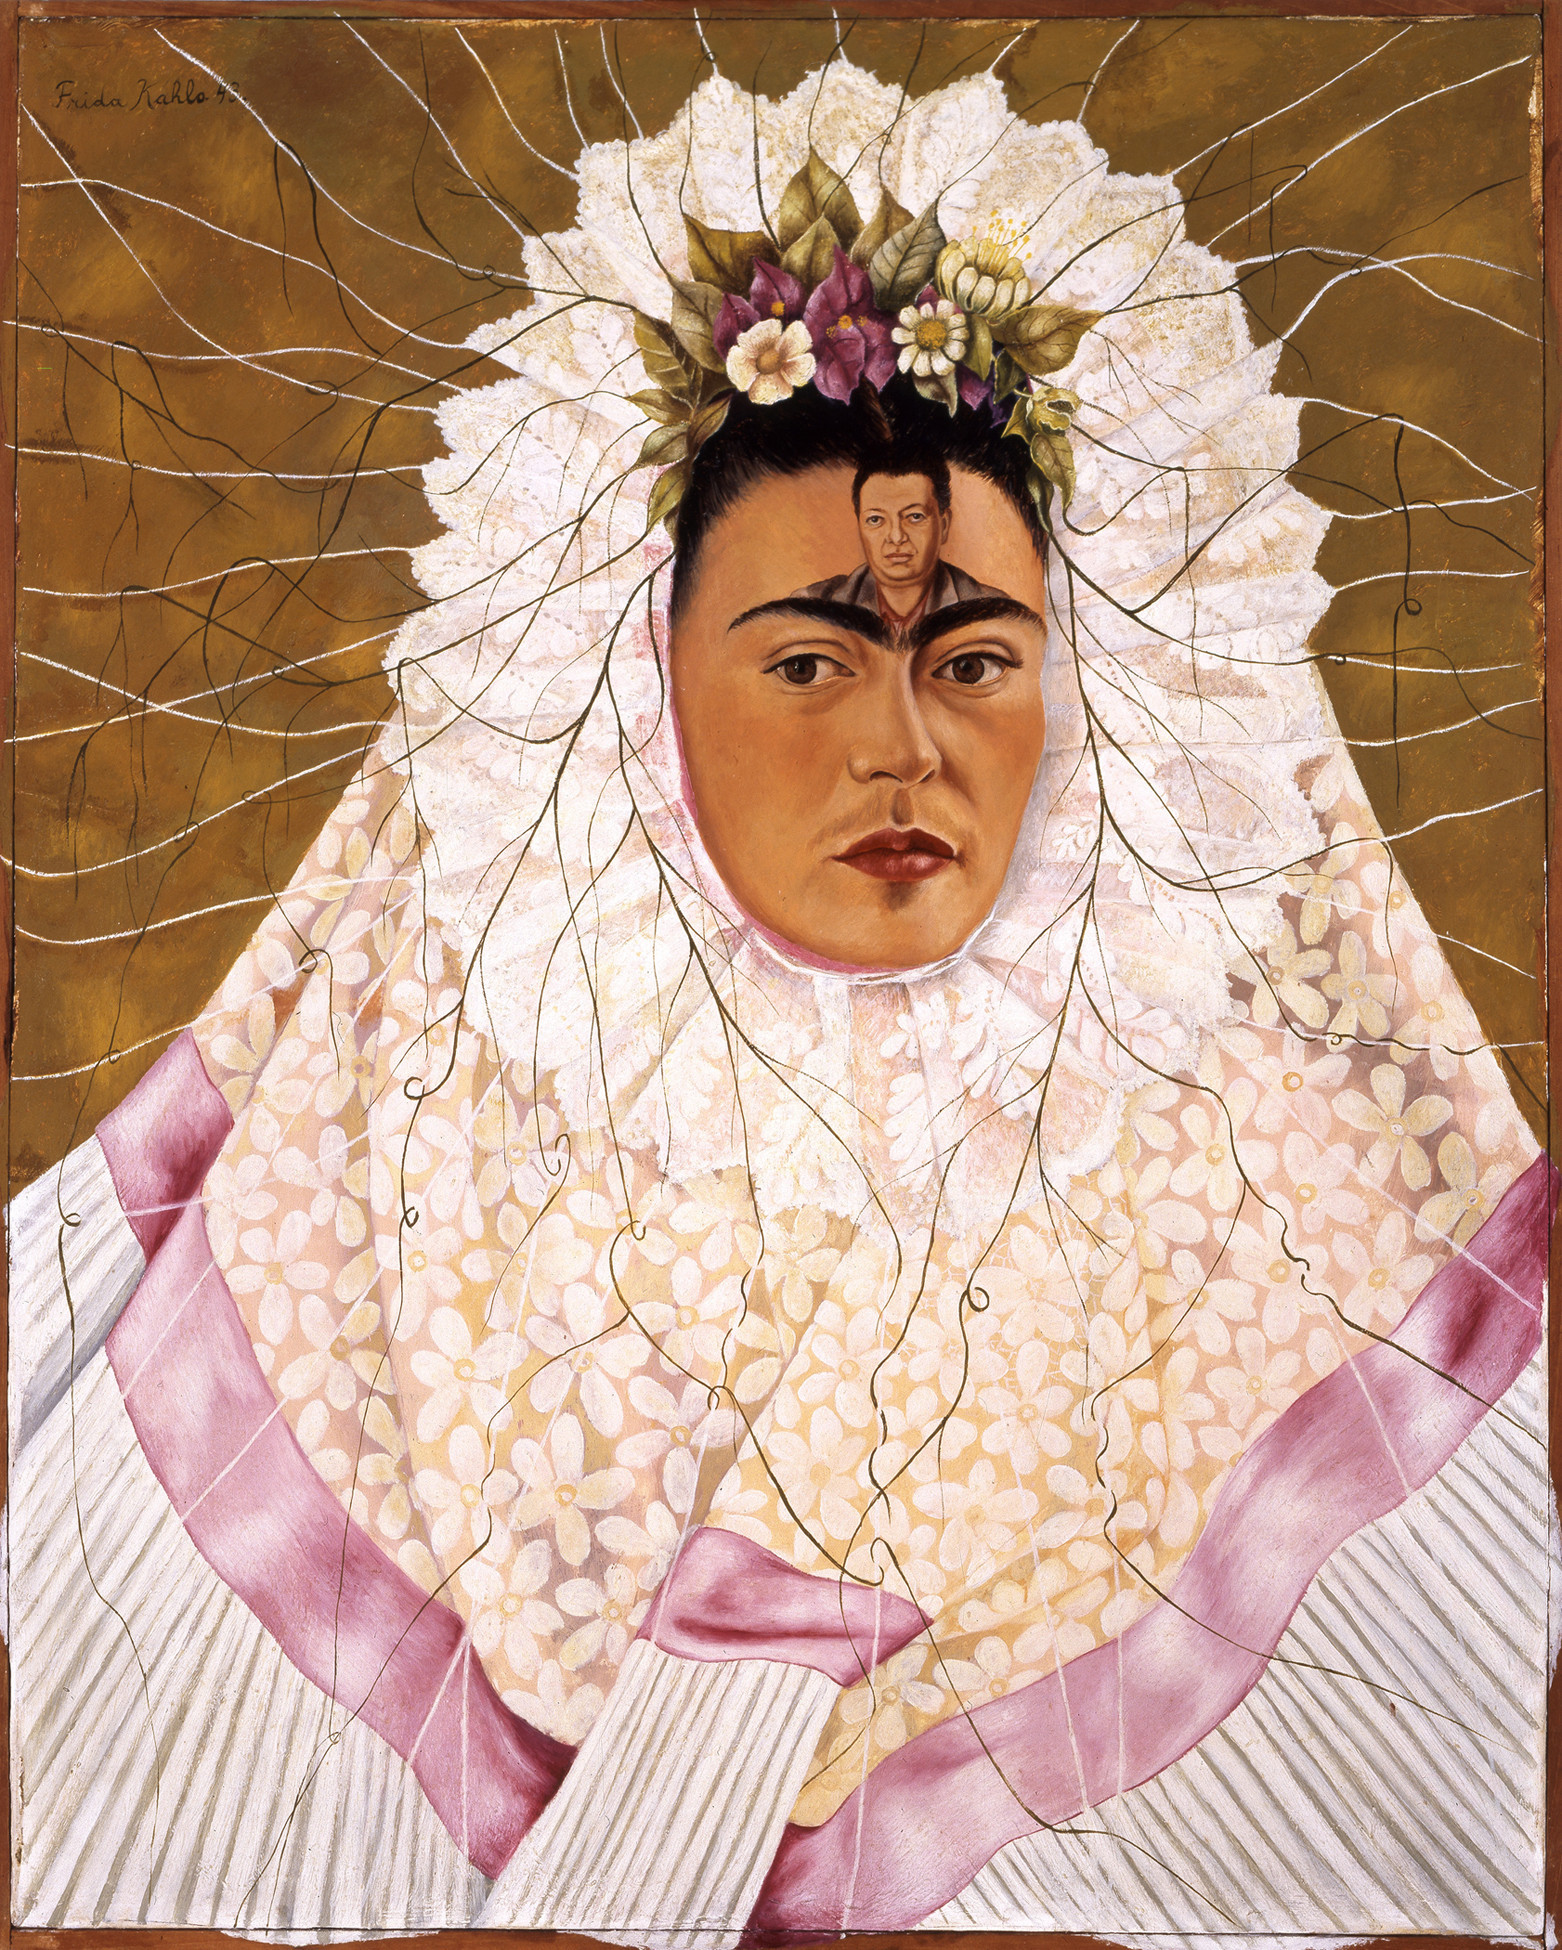 frida kahlo essay the letters of frida kahlo cartas apasionadas martha zamora segalwl silence of the lambs essay ozymandias